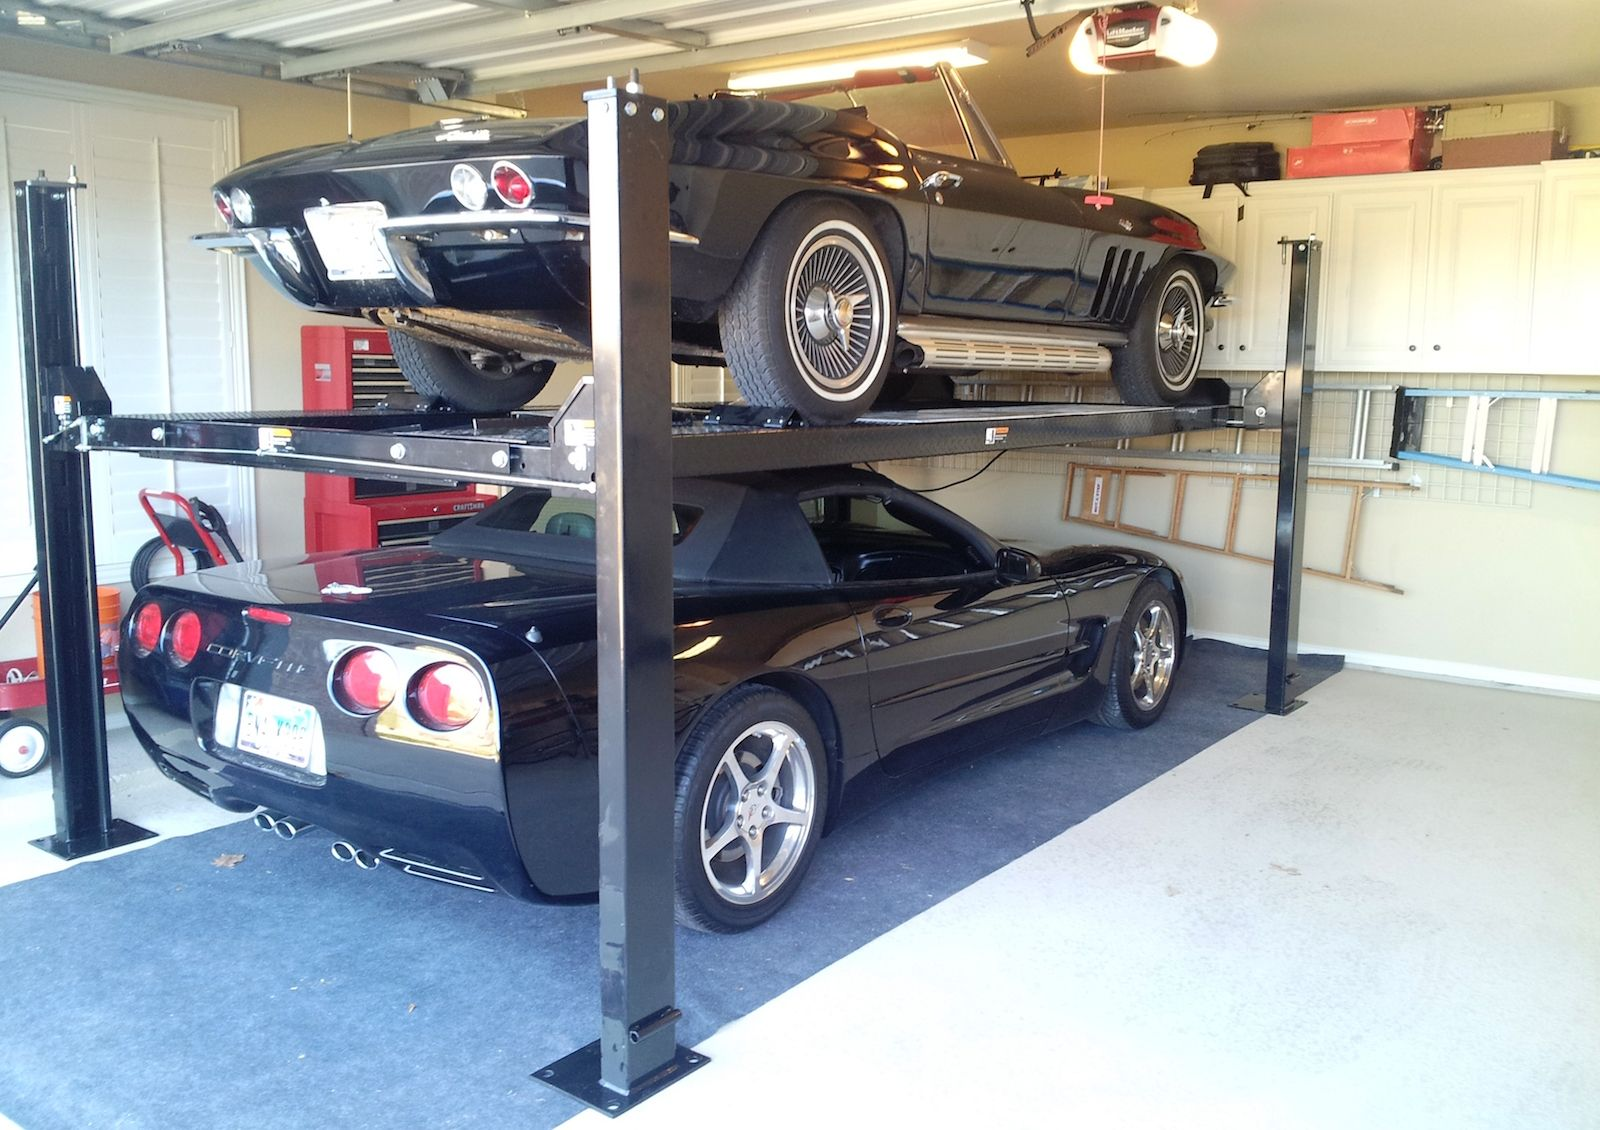 Car Lifts Home Garage on home garage shop equipment, home garage air compressors, home garage lift residential, home garage motorcycle, home garage scissor lifts, home garage lift storage, home garage vehicle lifts, home garage ideas, home automotive lifts, home garage hoist, home garage flooring, home garage cabinets, home garage parking lifts, automotive garage lifts, home garage doors, home garage tools,